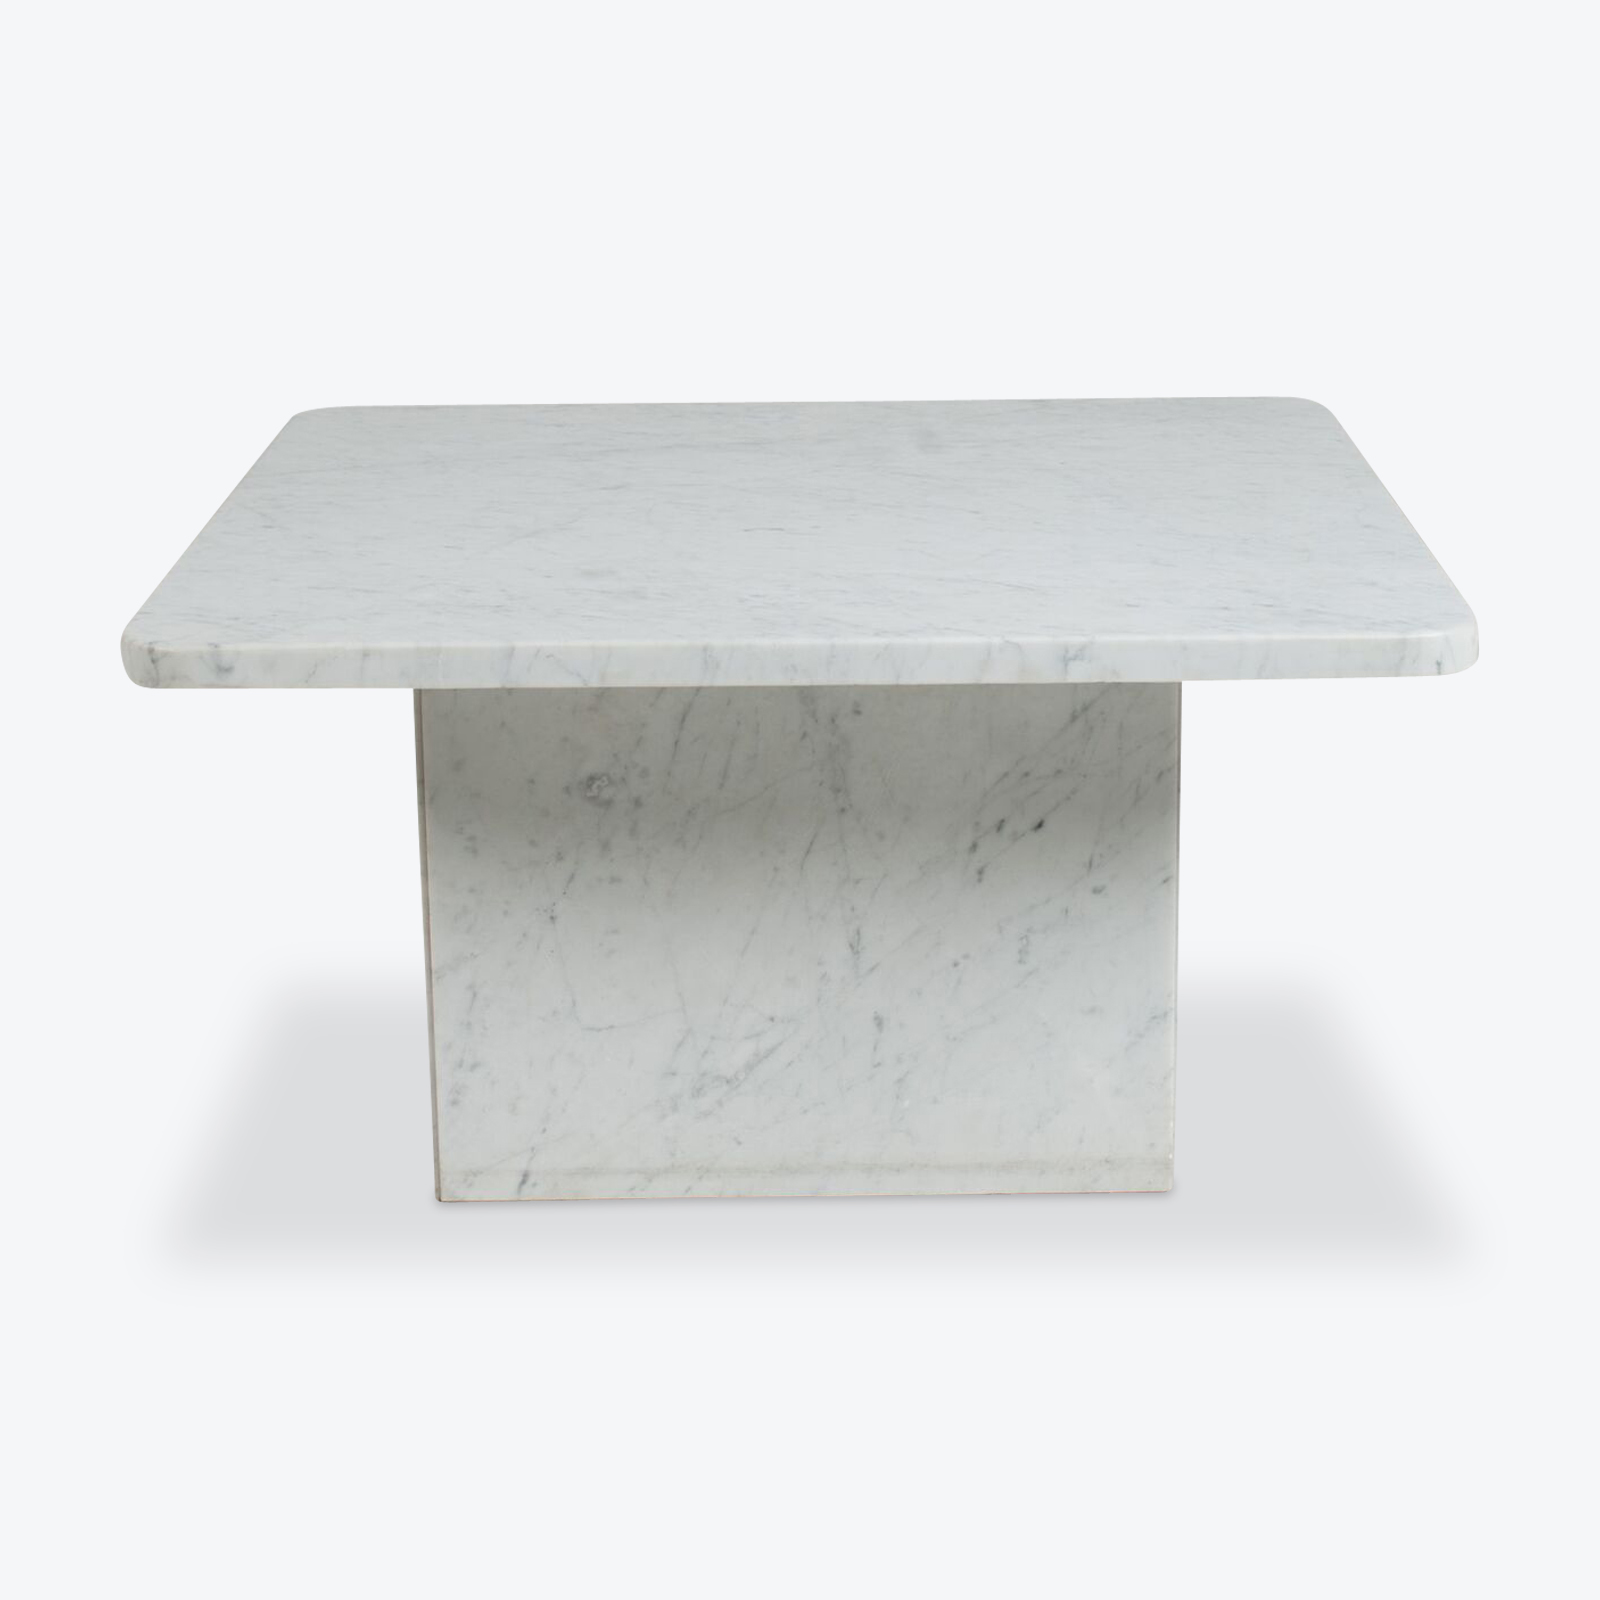 Square Coffee Table In Marble With Rounded Edges 1970s Netherlands 00.jpg